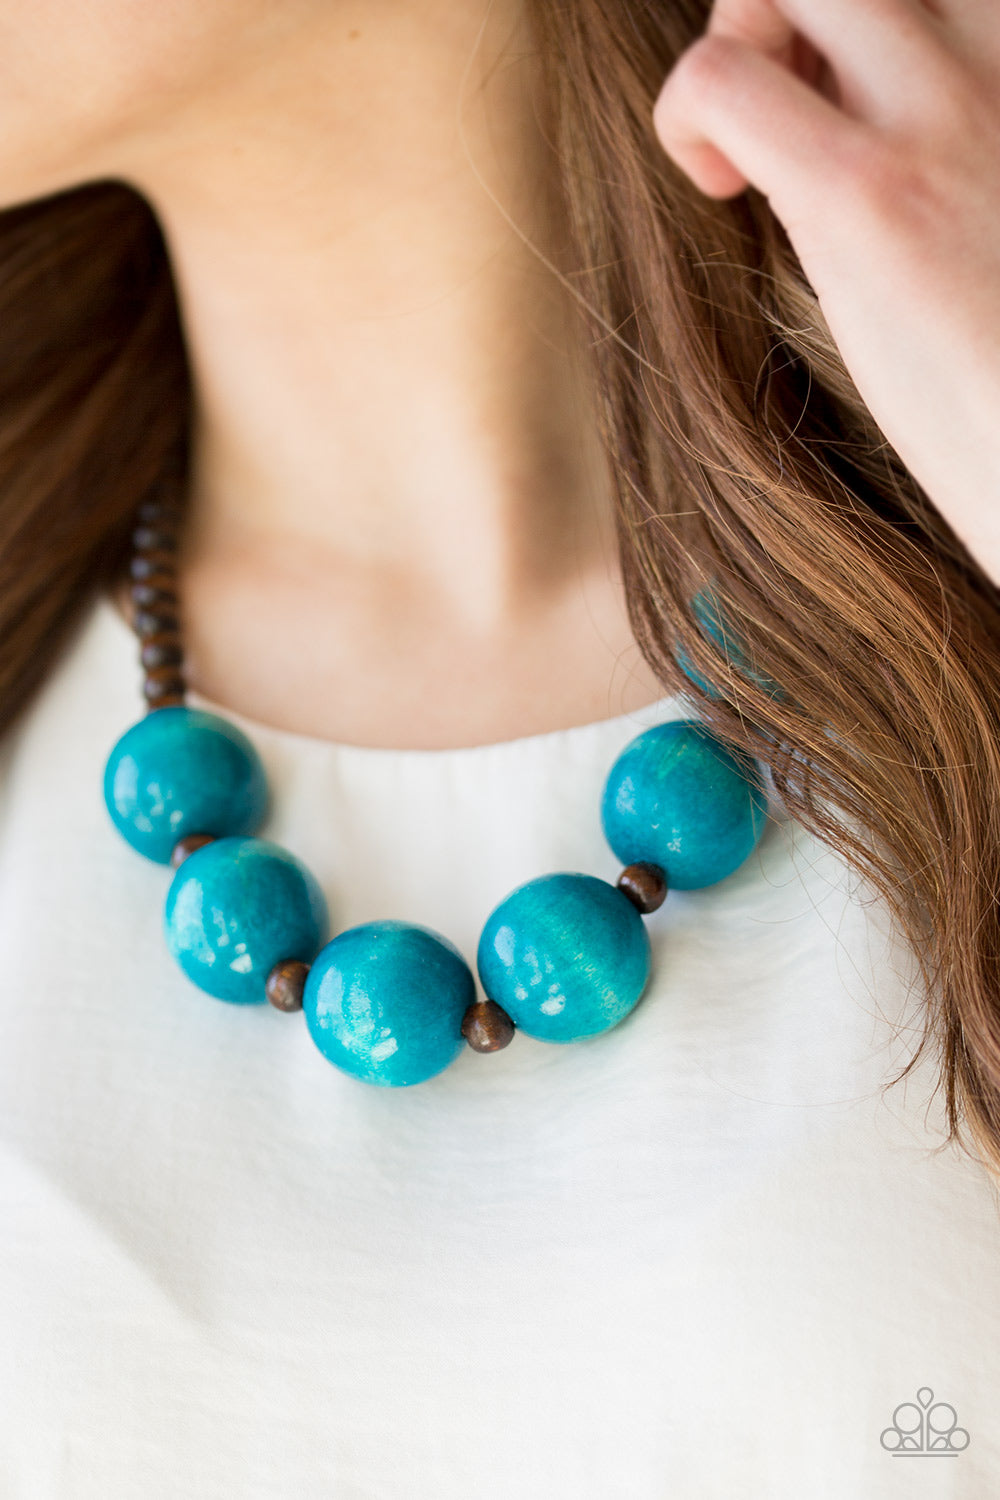 Paparazzi - Oh My Miami - Blue Wood Necklace Set - Classy Jewels by Linda